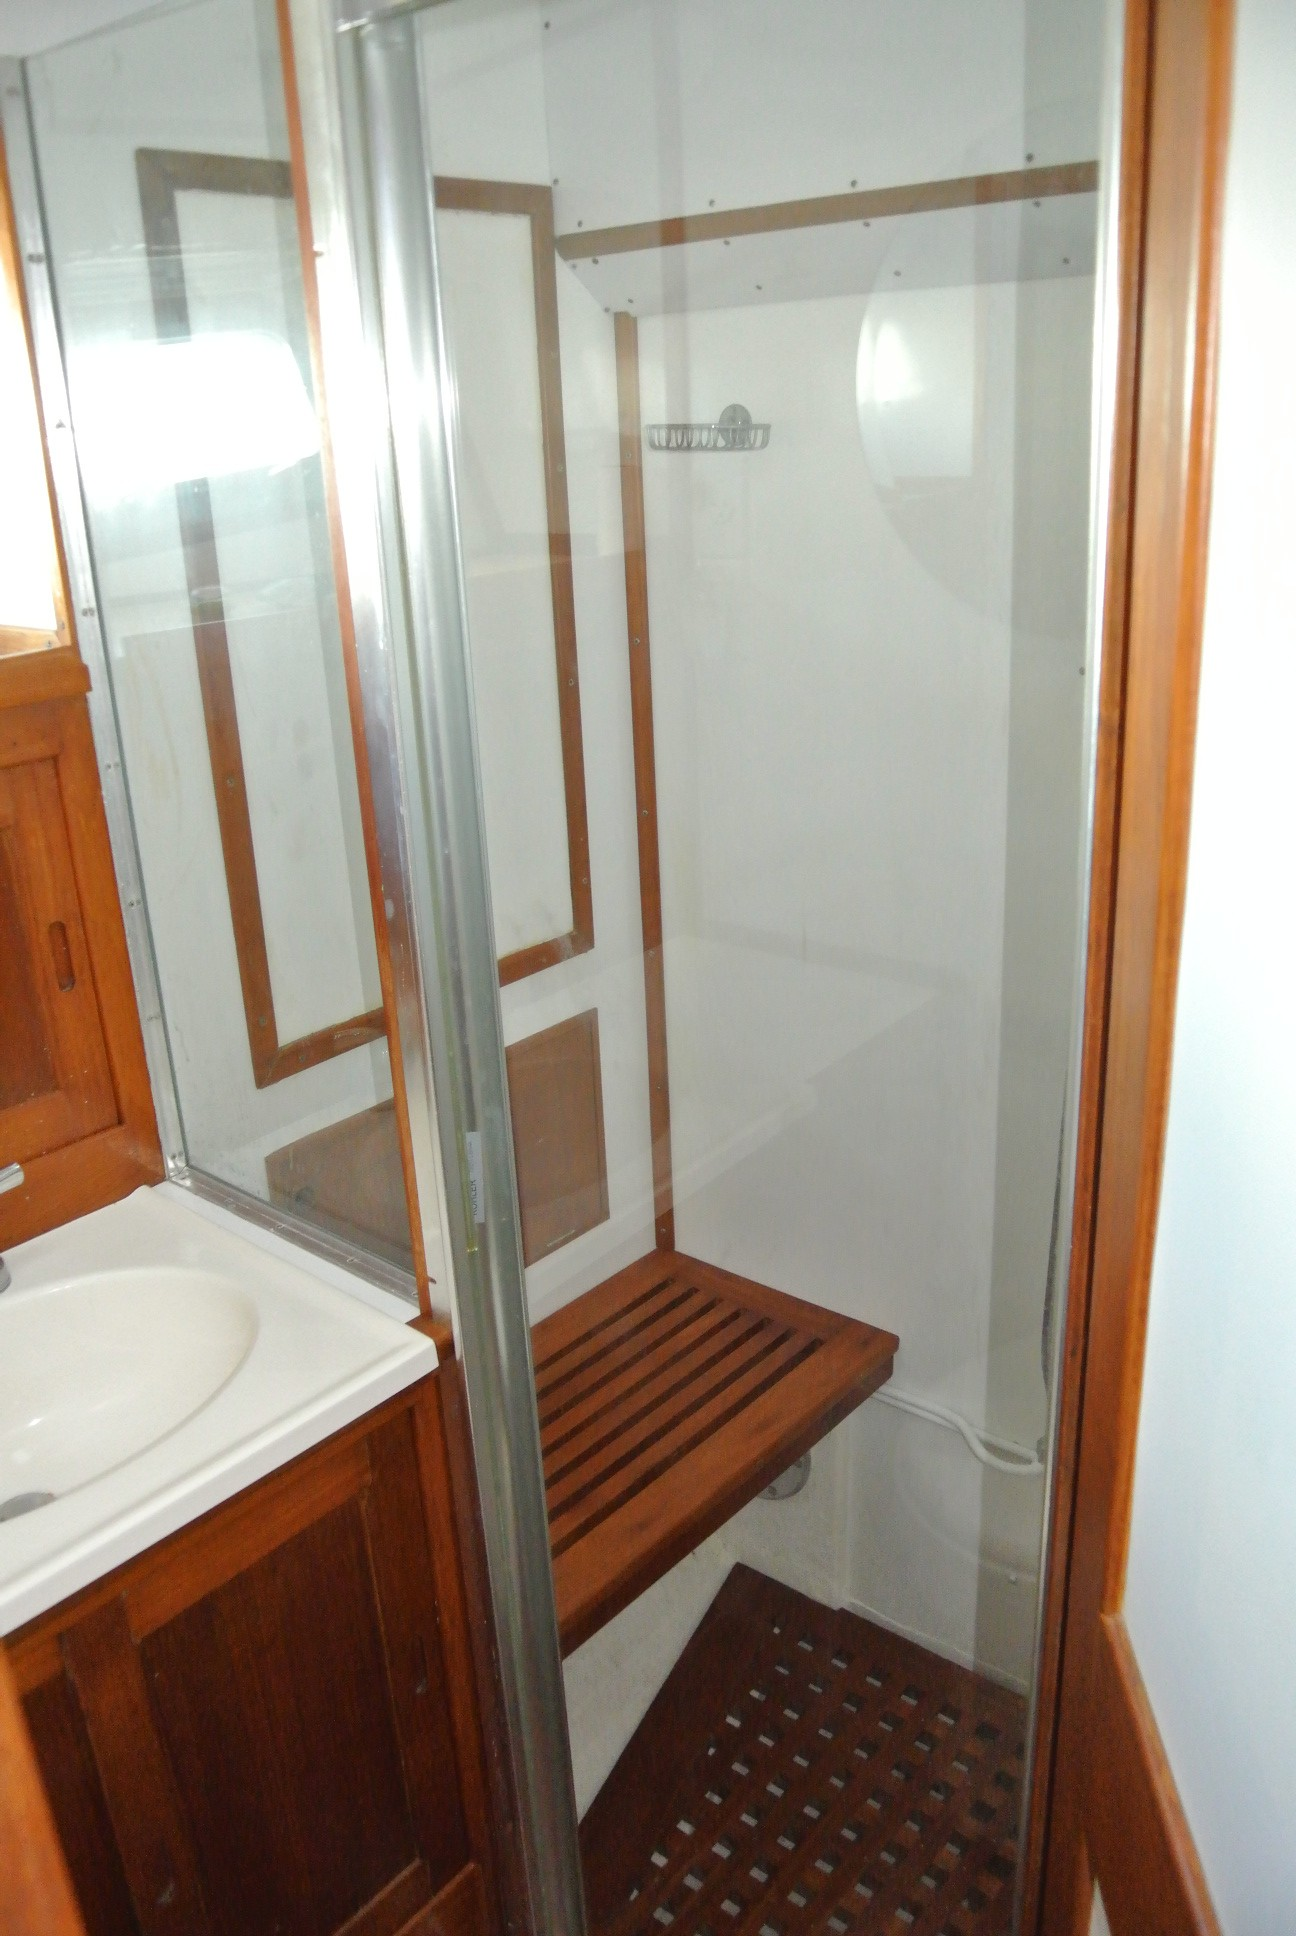 Forward head with a separate shower stall.